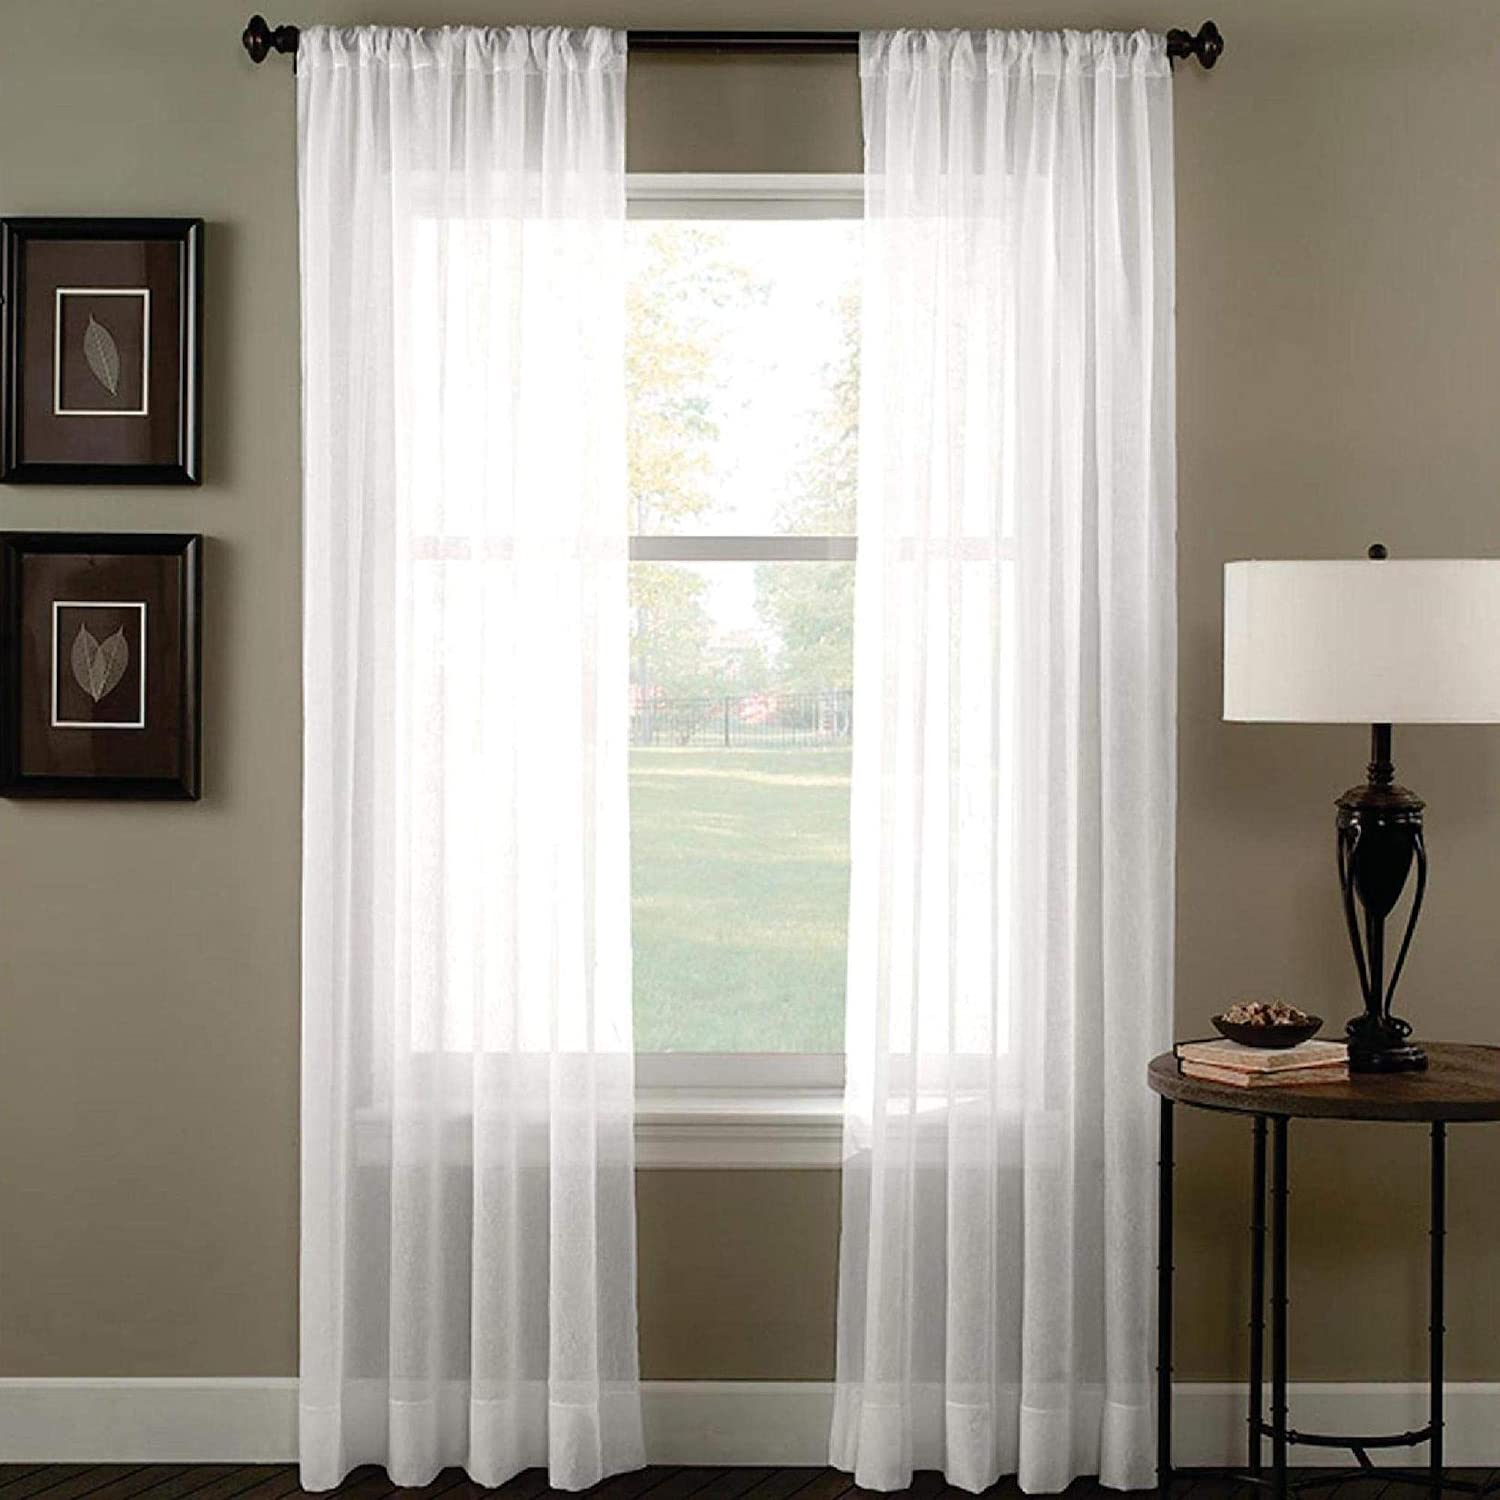 "FWD Rod Pocket Sheer Panel Curtain Drapery Fabric Window Treatment Bedroom, Living Room, Kitchen, Party Hall, Event Decor, Venues More (120"" inches Wide x 168"" inches Long) (White)"